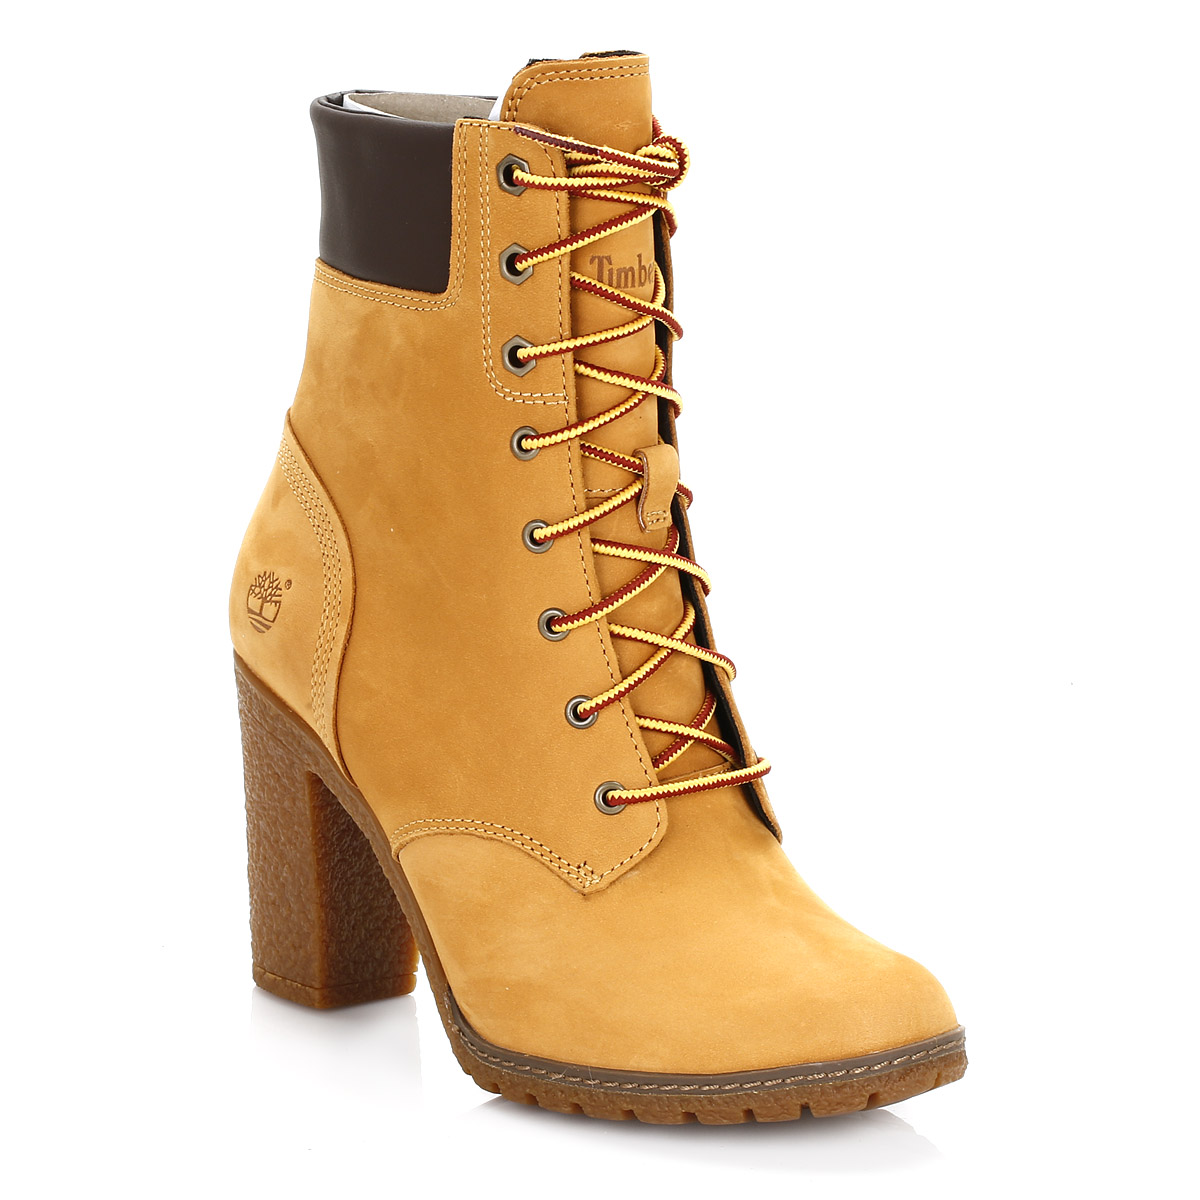 Simple  Timberland  Timberland Womens Wheat 14 Inch SideZip LaceUp Boots